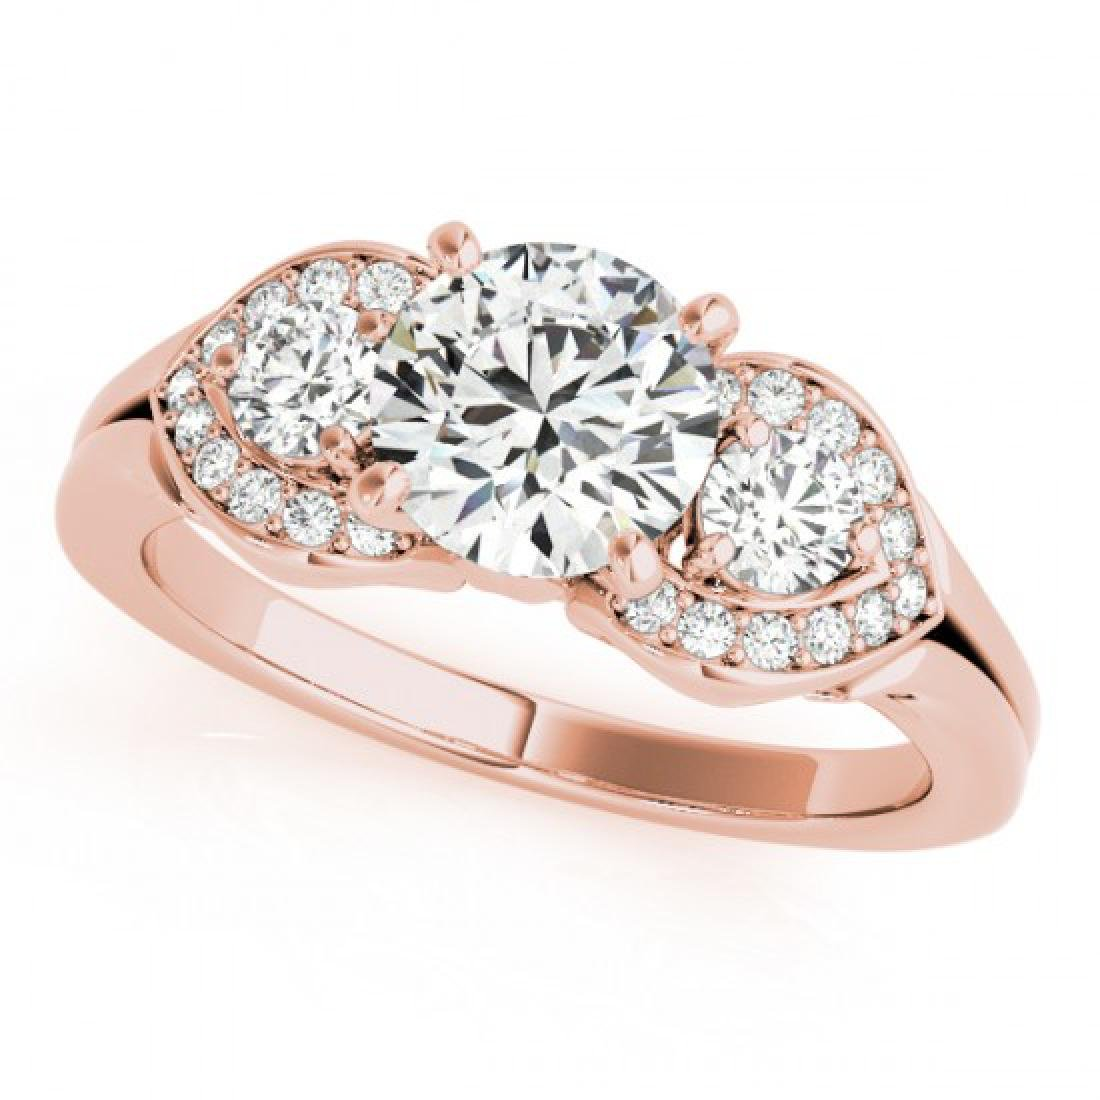 1.2 CTW Certified VS/SI Diamond 3 Stone Solitaire Ring